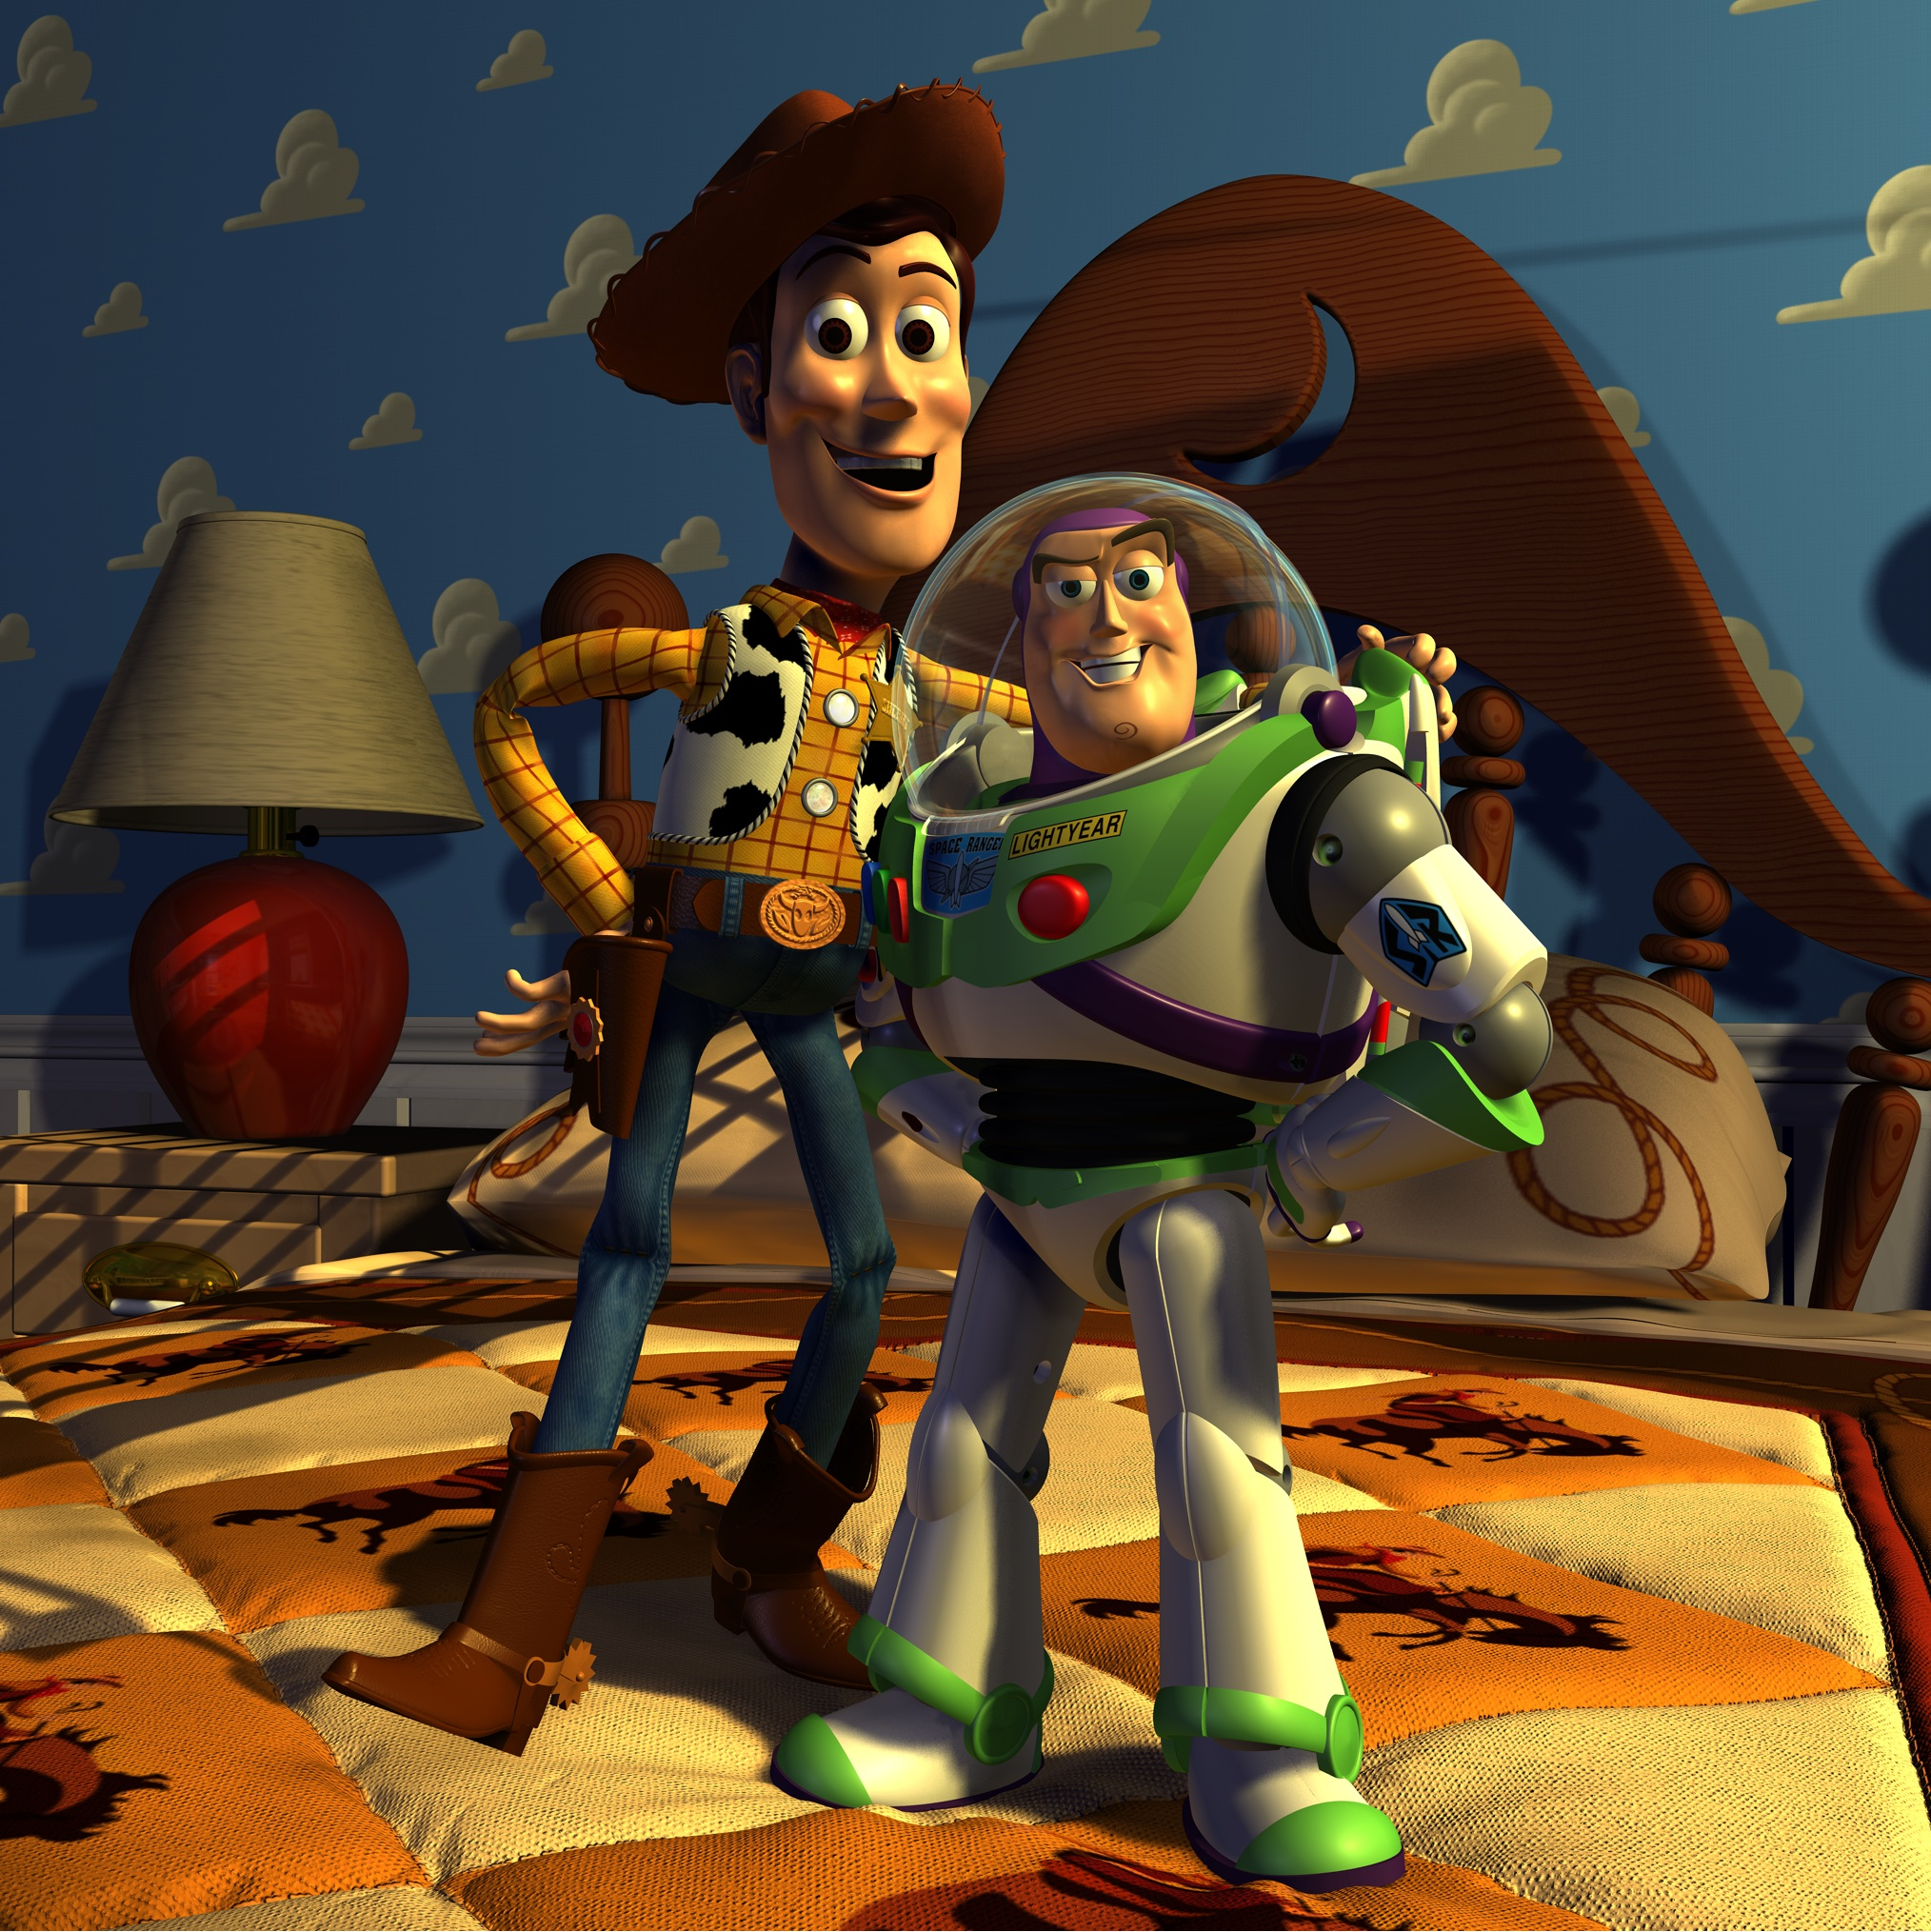 A still from the final version of 'Toy Story' (1995)